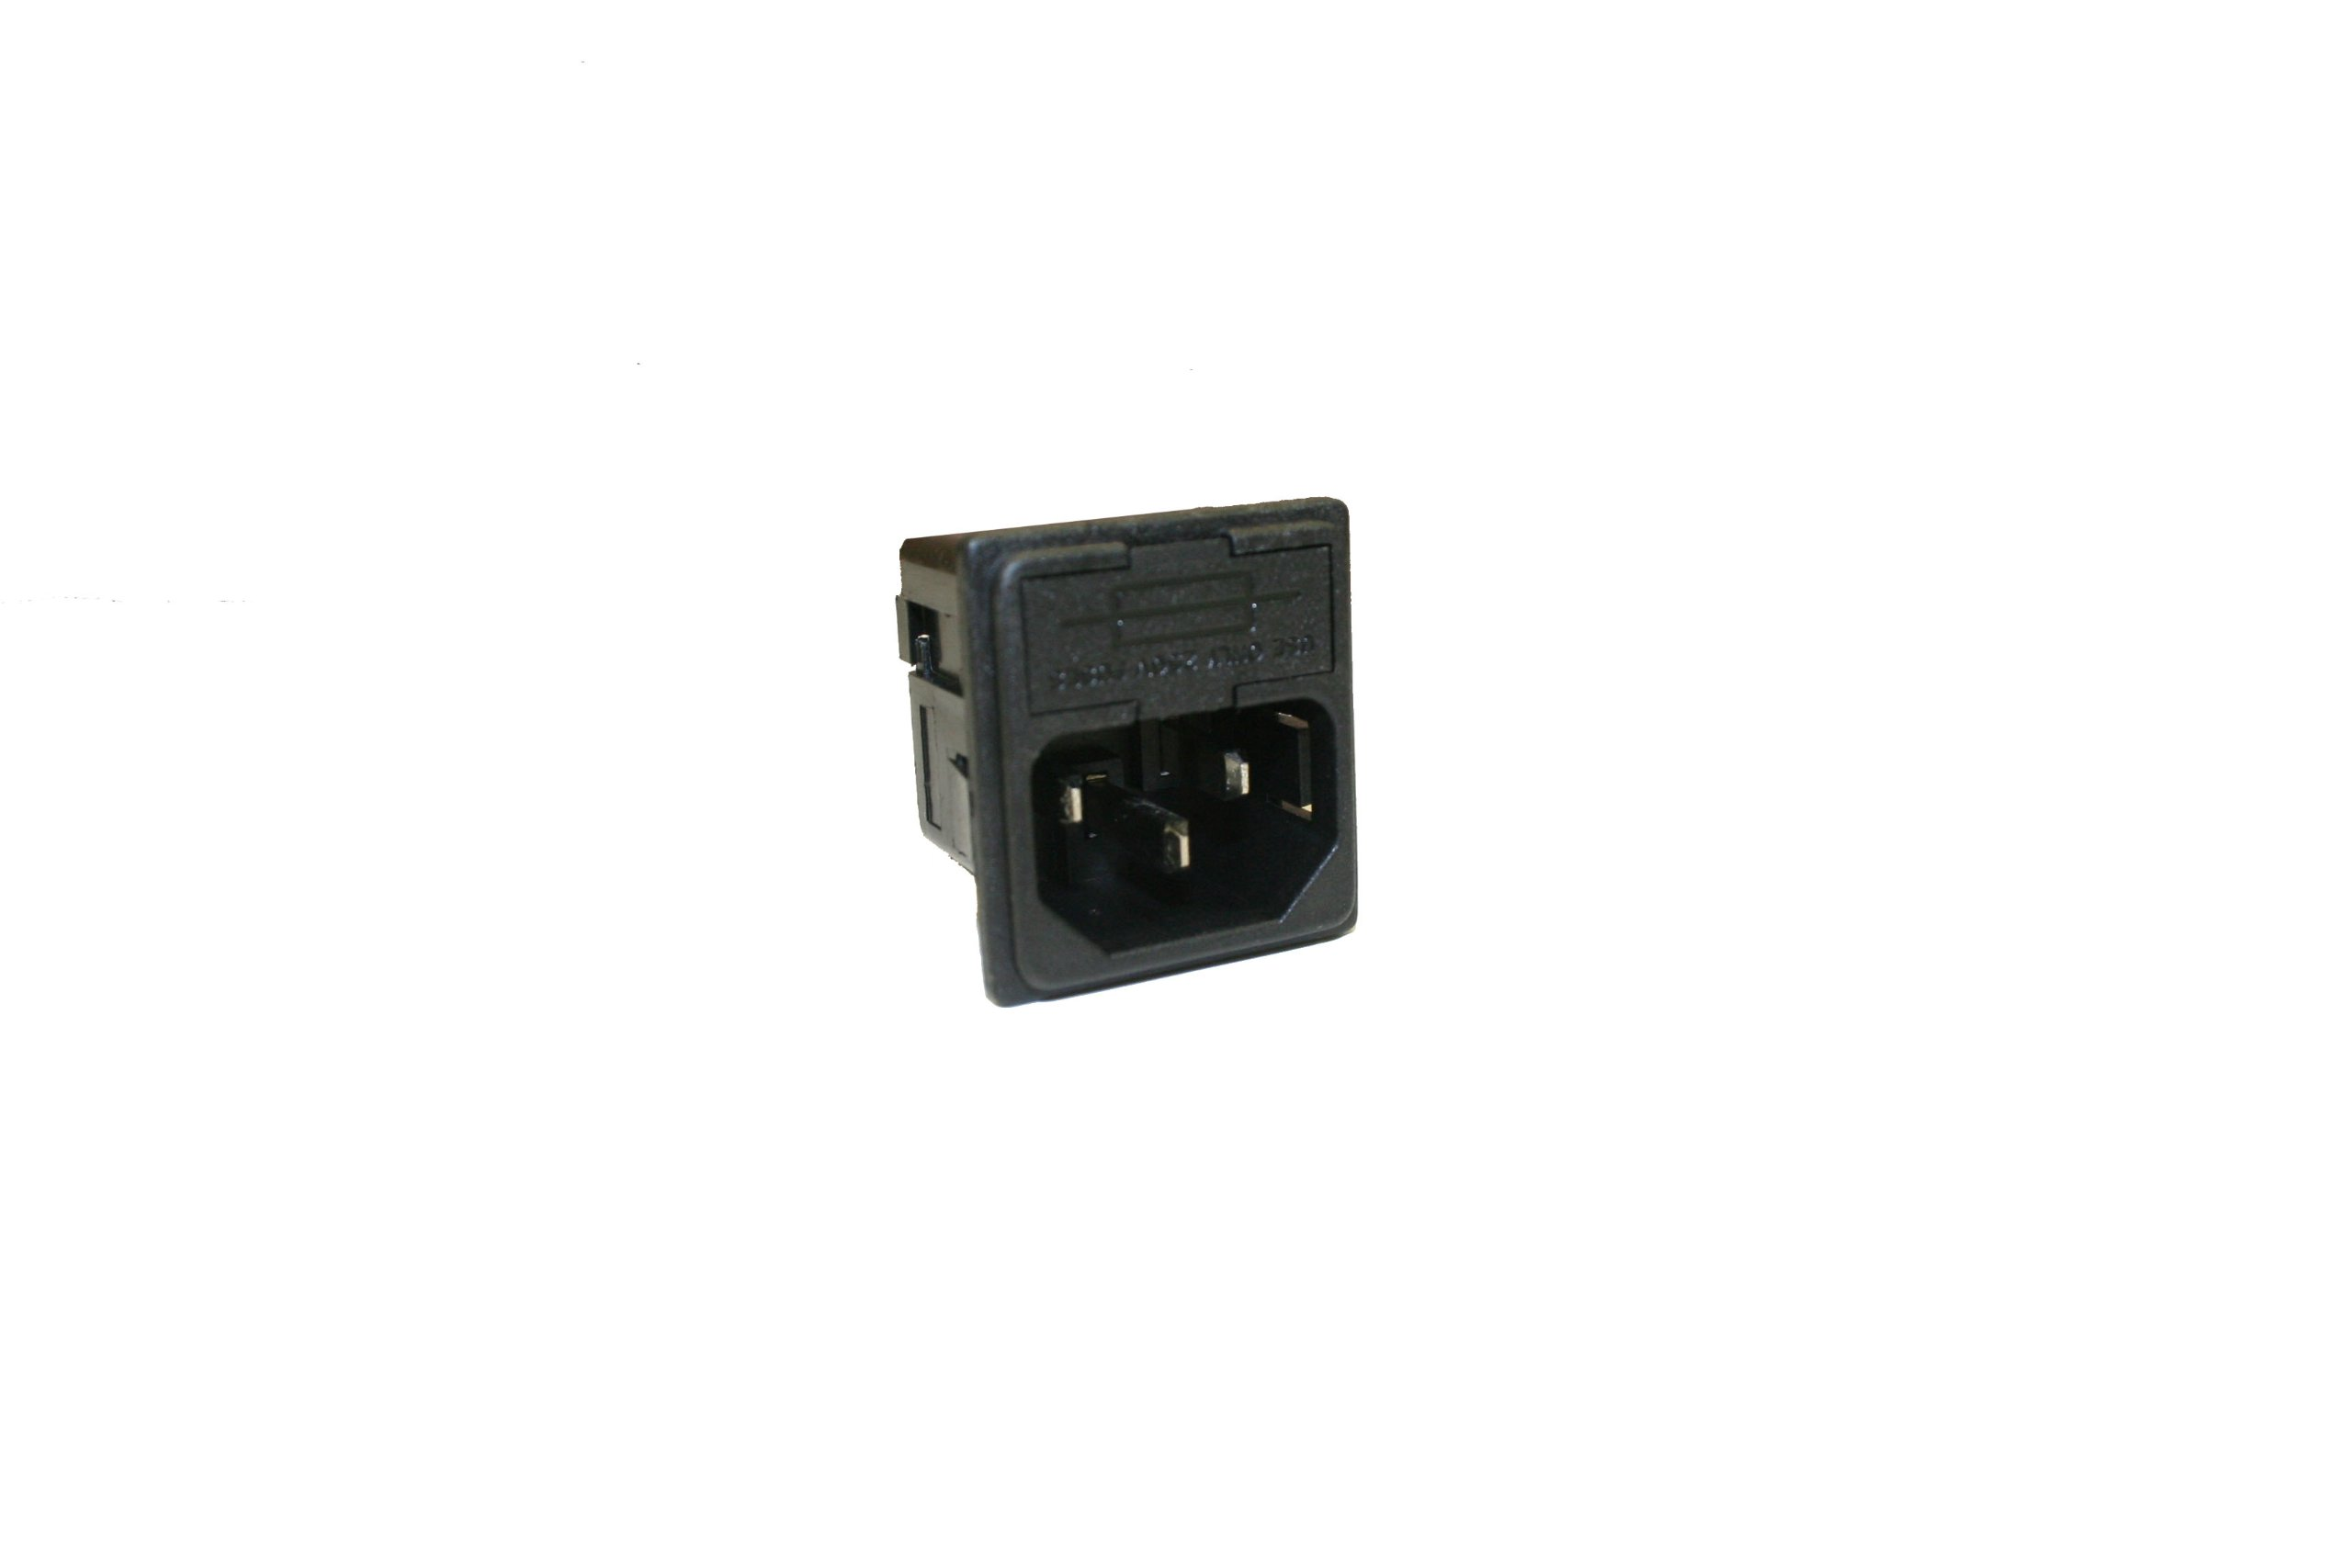 Interpower 83110121 Two Function Single Fused Power Entry Module, C14 Inlet, 1.5mm Panel Thickness, Single Fused, 10A Current Rating, 250VAC Voltage Rating